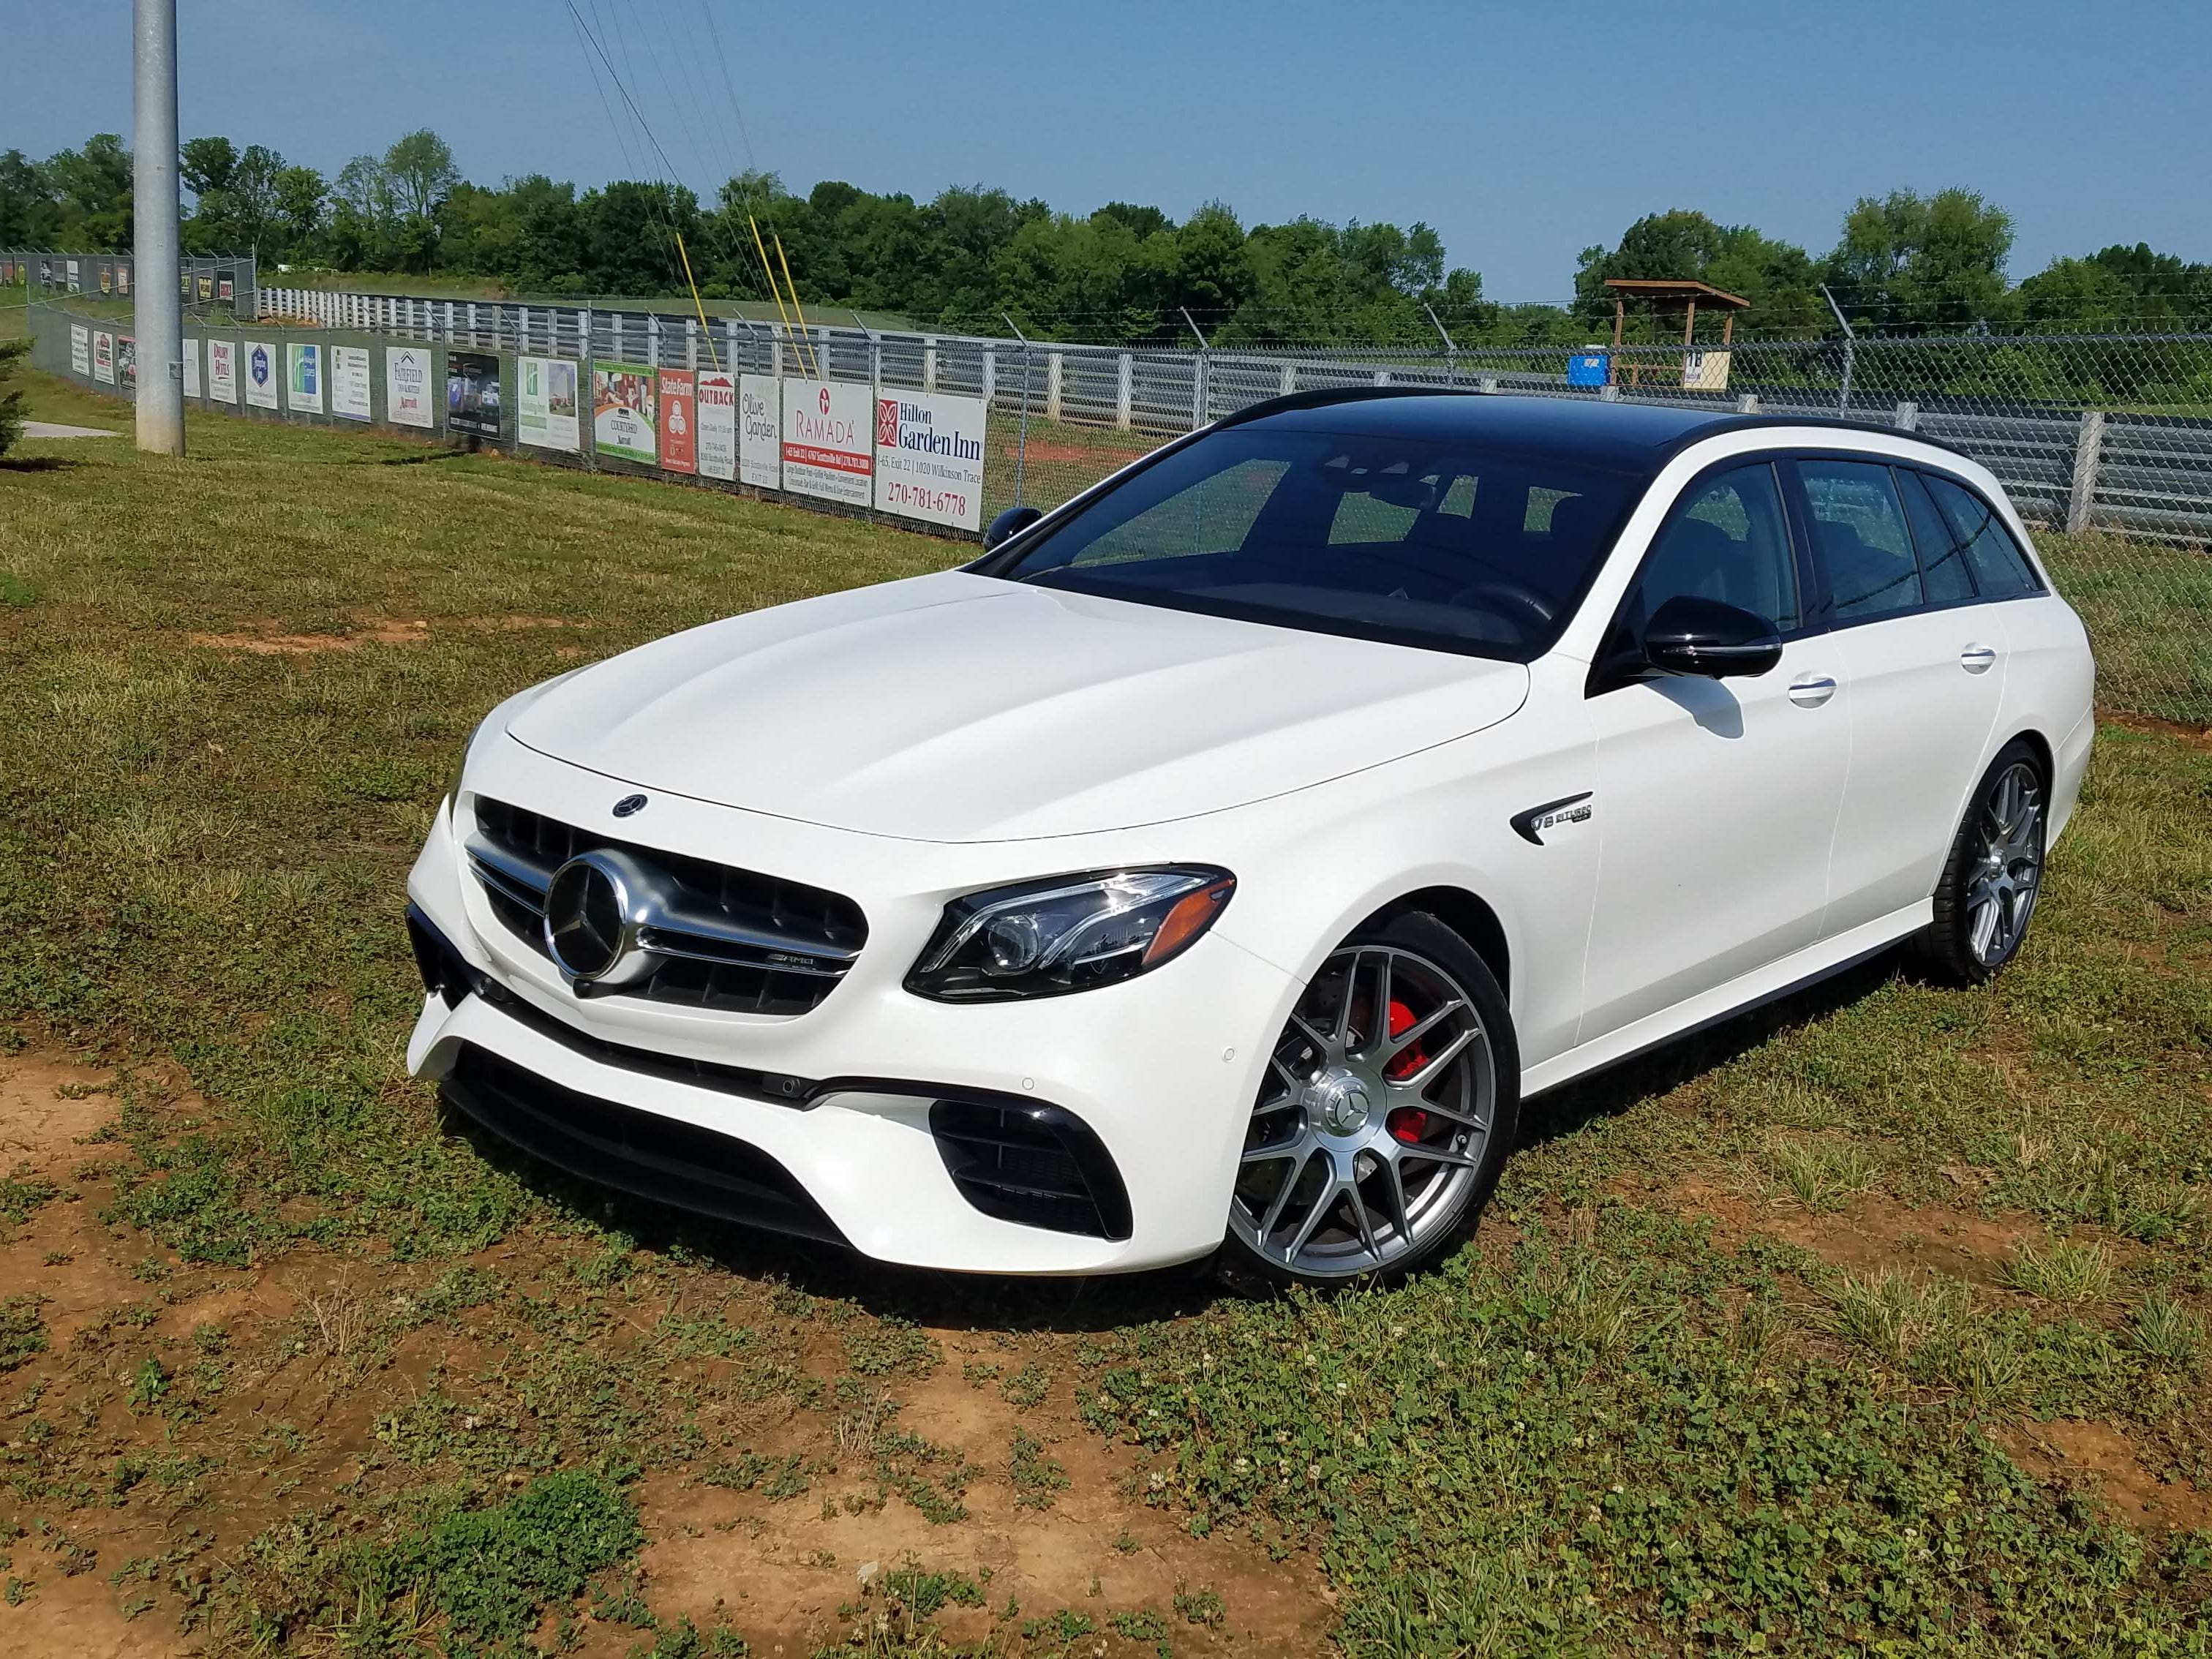 Unlike the dramatic Jaguar Sportbrake, the Mercedes-AMG E63 S wagon looks relatively civilized — but for its huge front air scoops and the rumble of its V-8 engine.